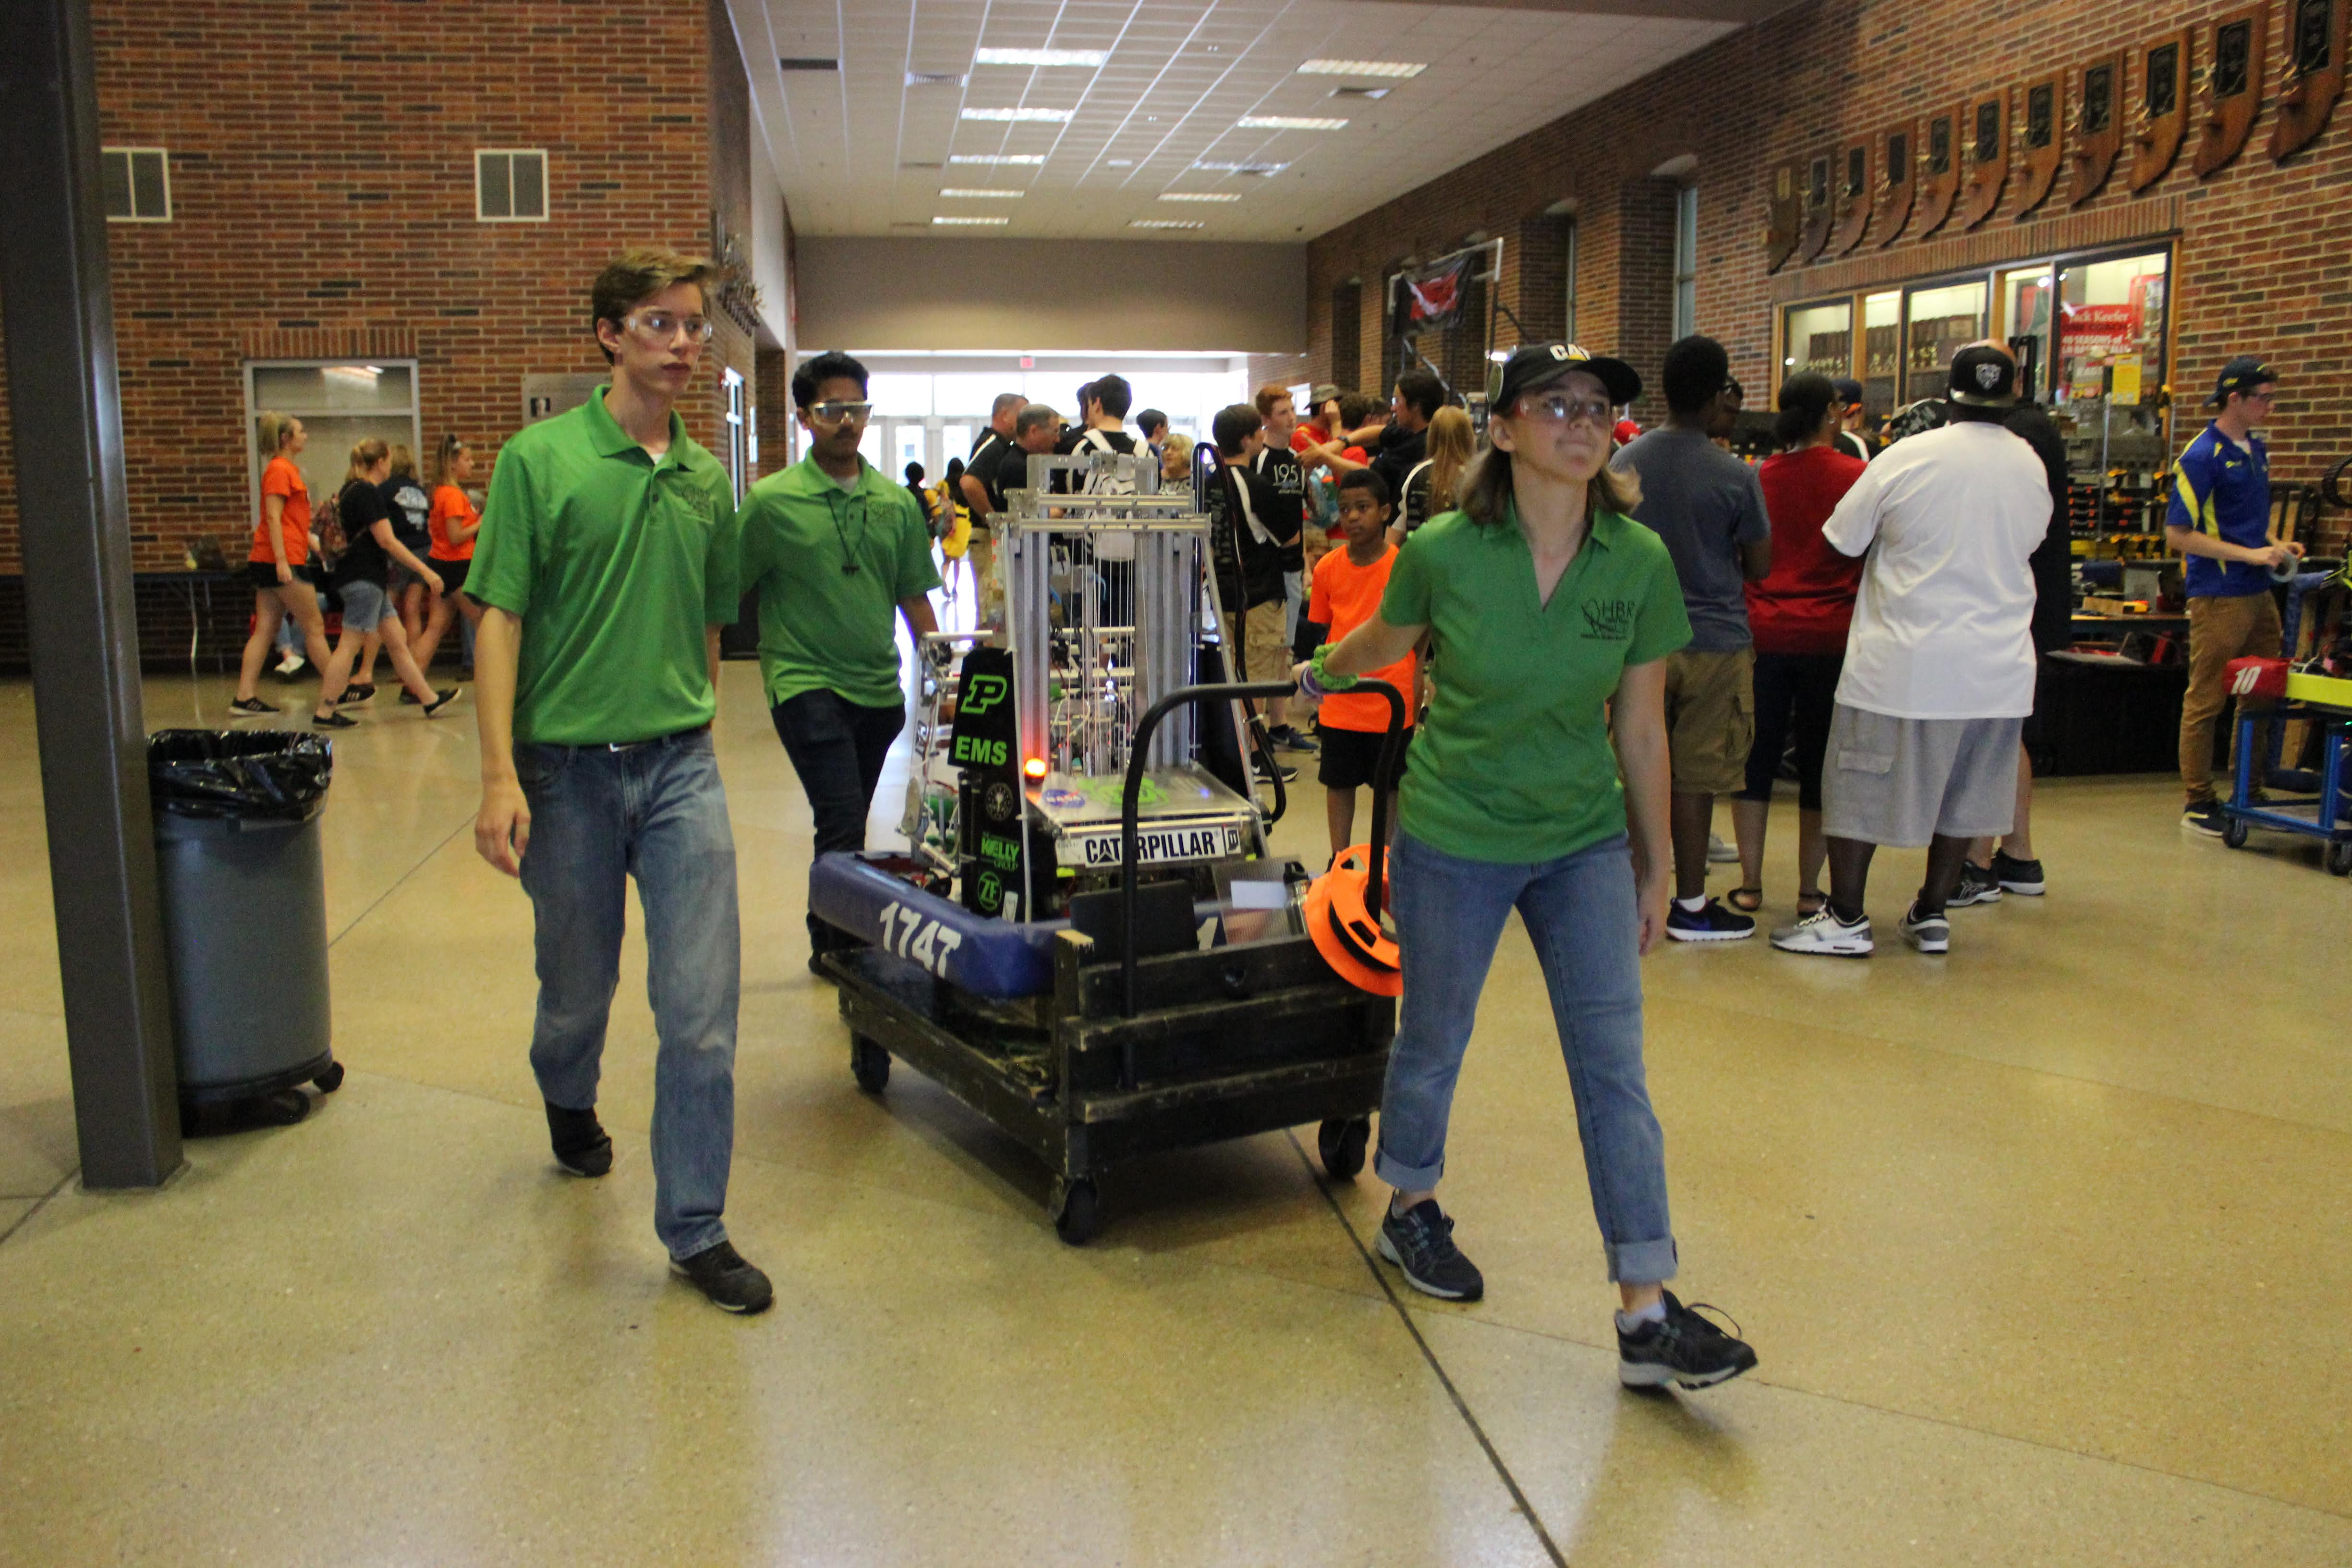 Drive team pulling a cart with our robot